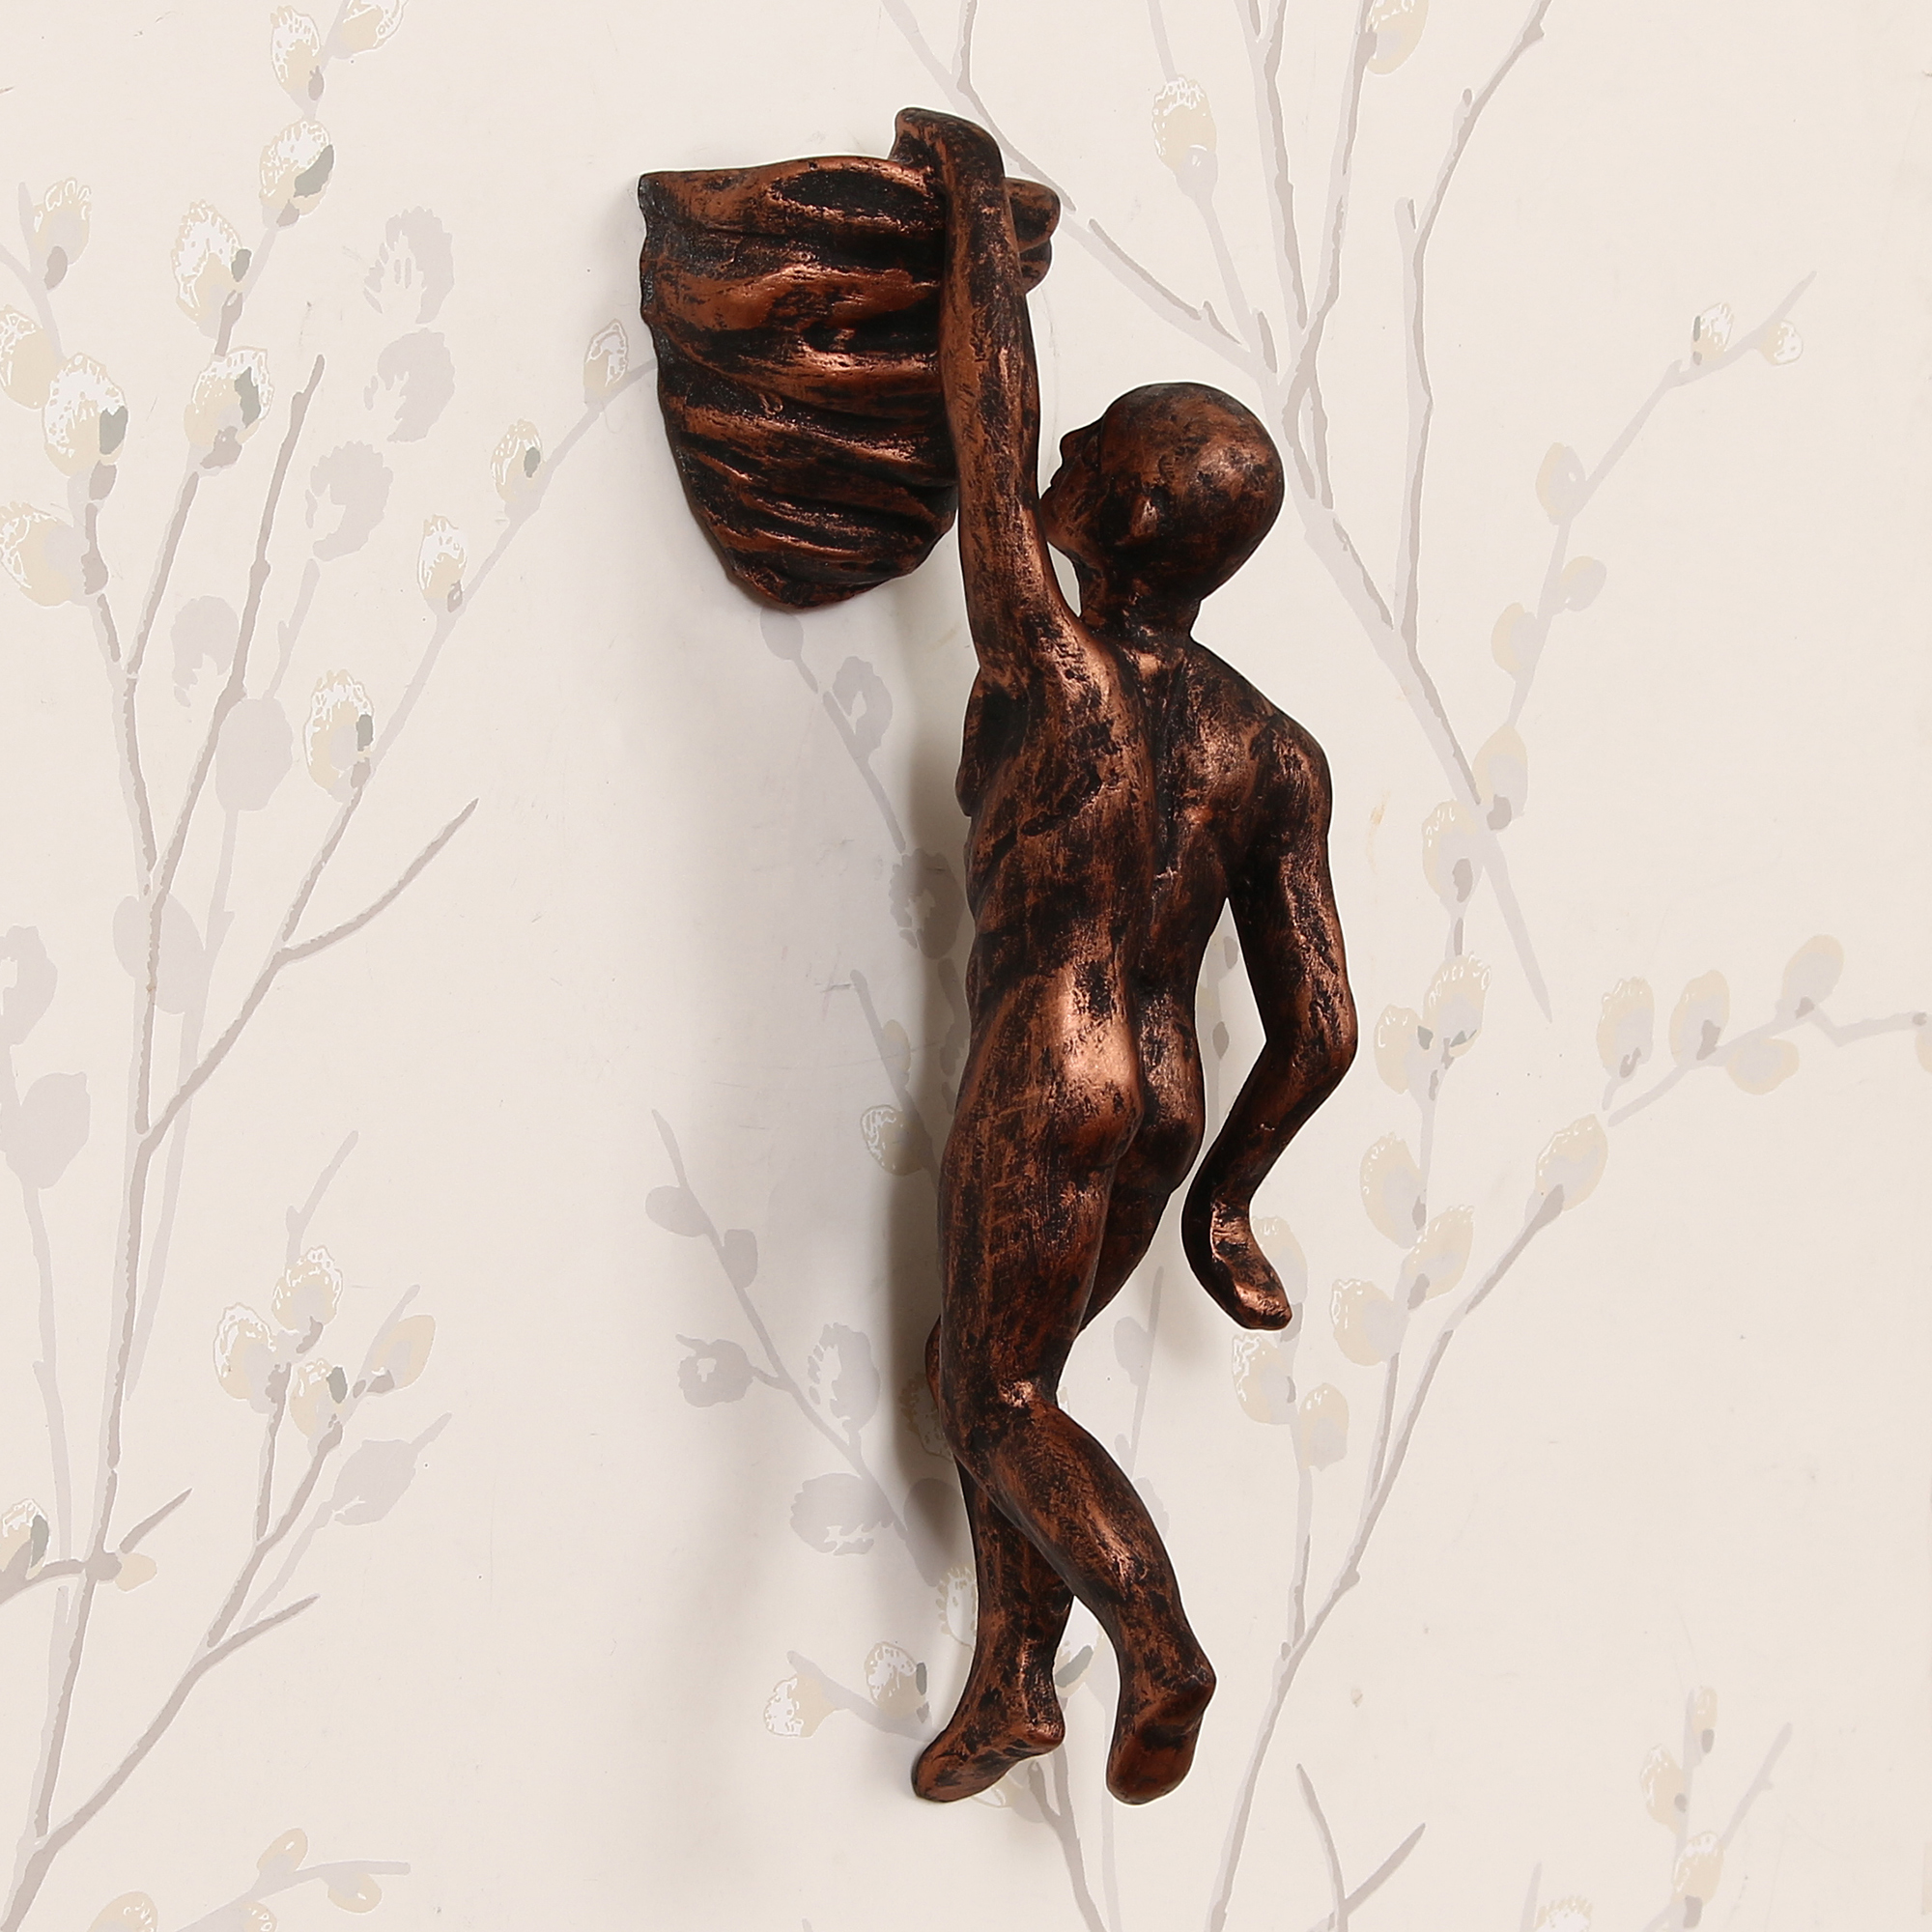 Man Doing Mountain Climbing Decorative Wall Hanging Statue Indian Home Decor